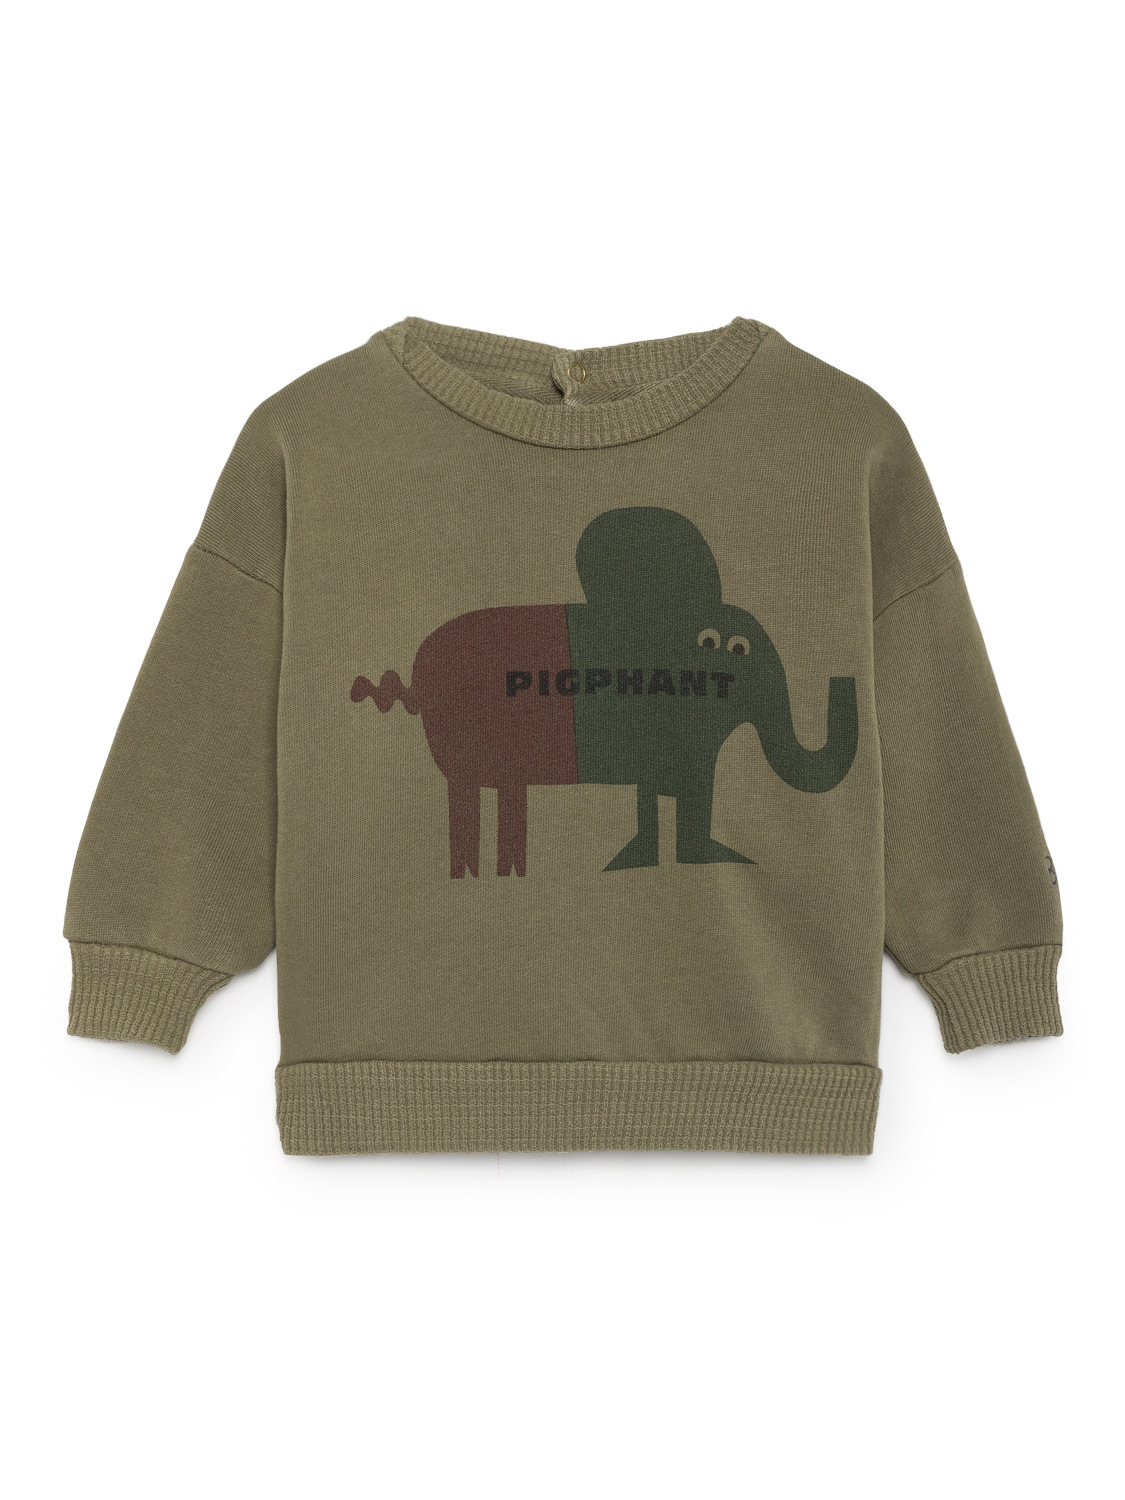 《BOBO CHOSES 2018AW》Pigphant Round Neck Sweatshirt / 12-36M